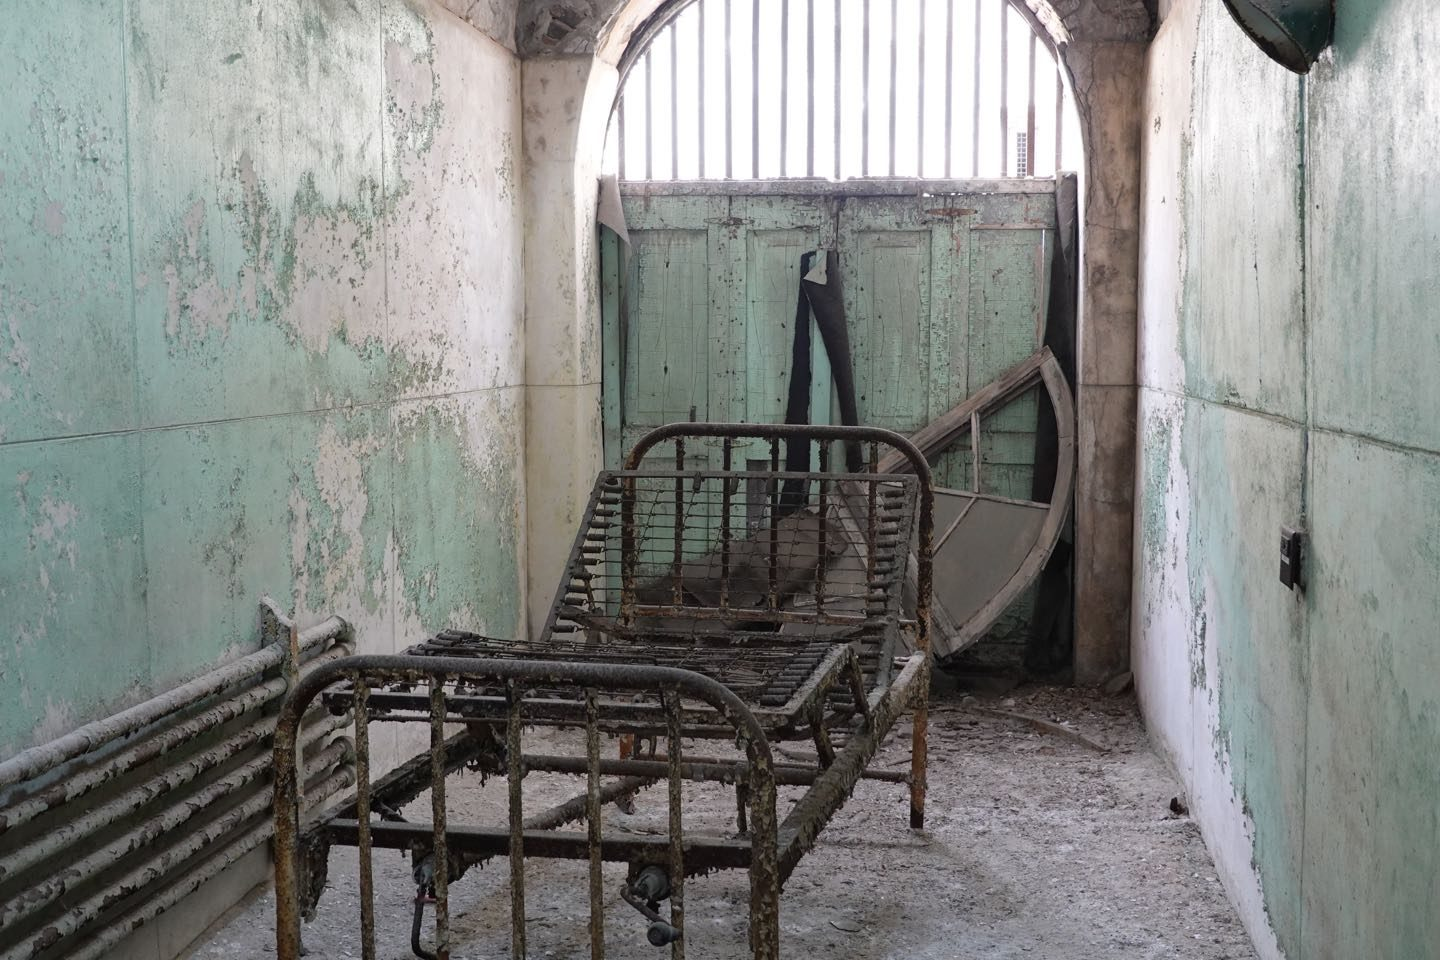 Hospital wing of abandoned prison you can visit in the US.